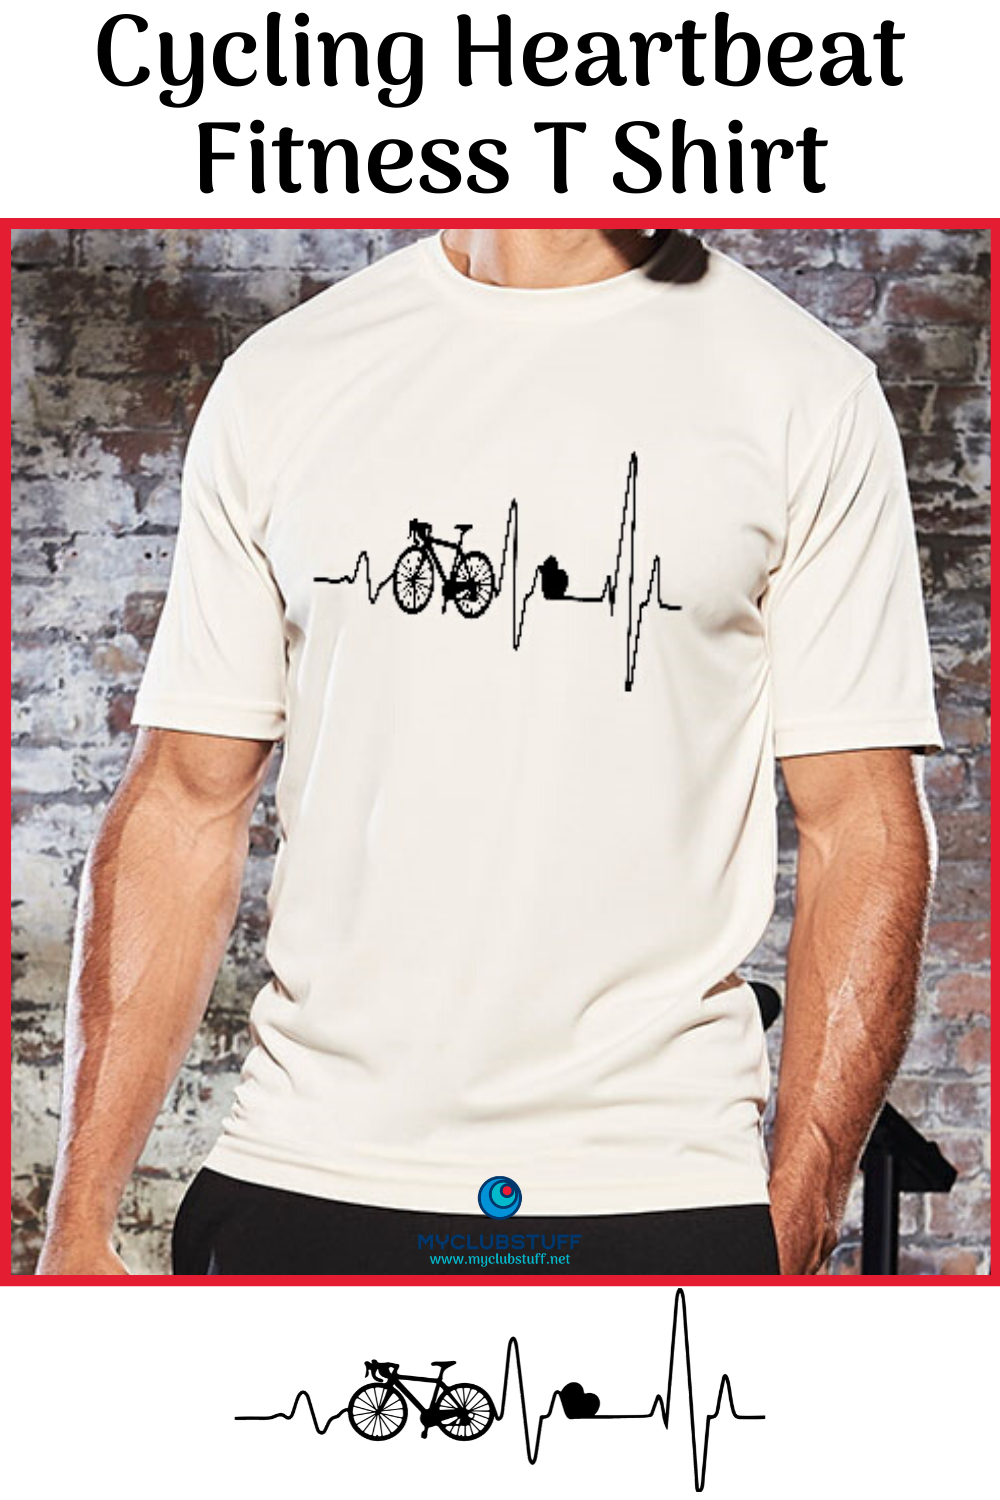 Smart active t-shirt with printed cycling heartbeat design from MyClubStuff - price £10  Made from a...